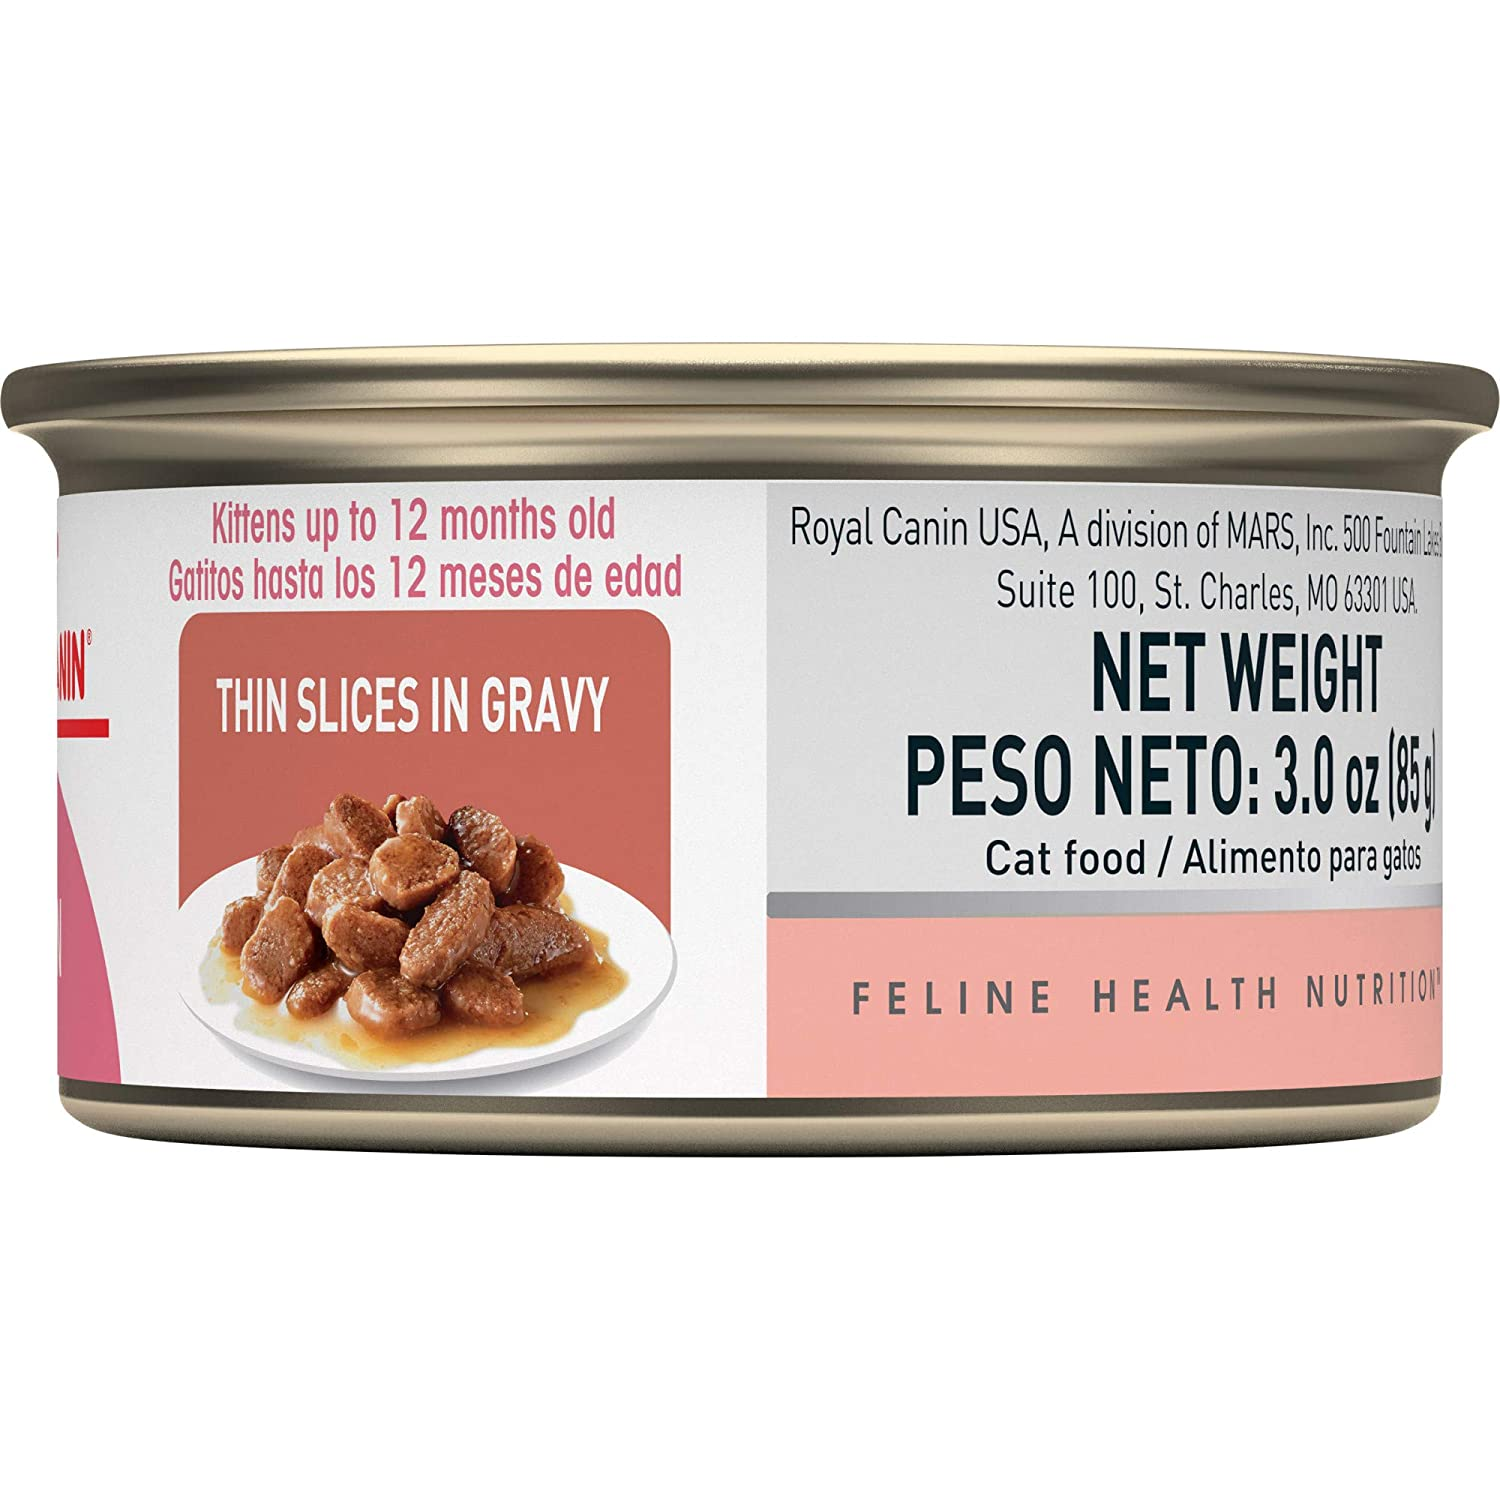 ROYAL CANIN FELINE HEALTH NUTRITION Kitten Instinctive thin slices in gravy canned cat food, 3-Ounces, by Royal Canin: Amazon.es: Productos para mascotas